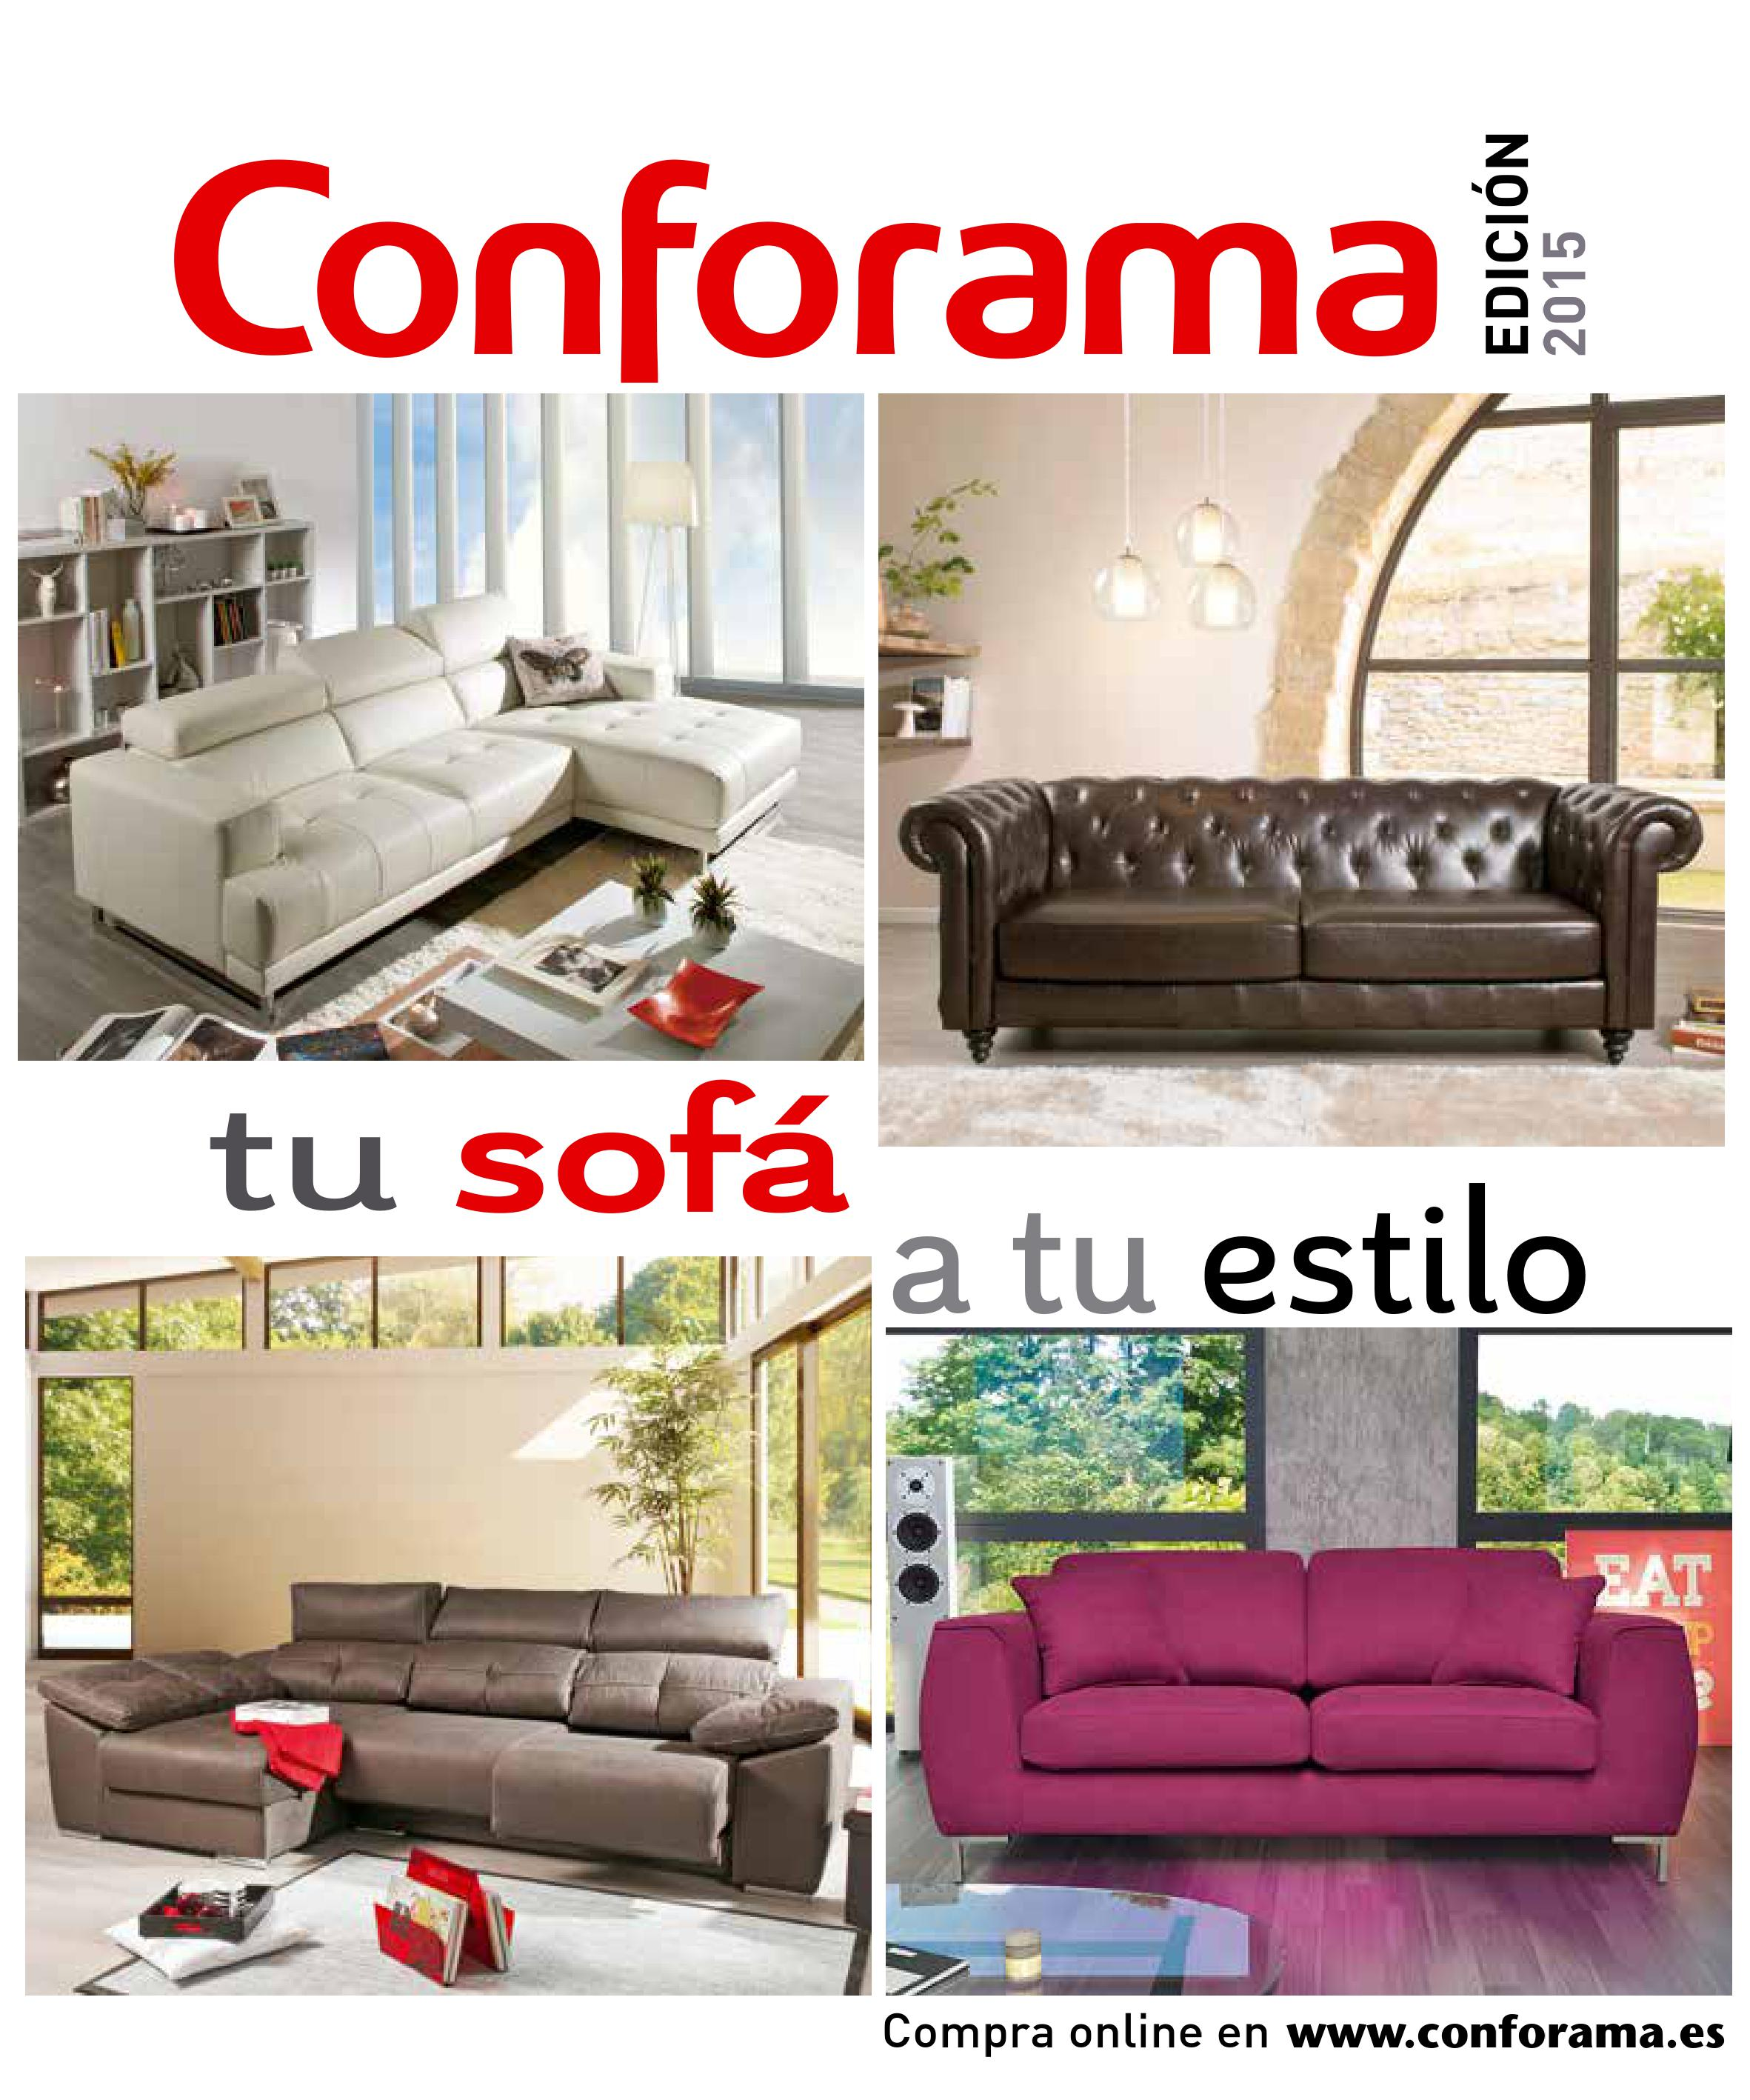 Sofas conforama 20151 for Sofas conforama catalogo